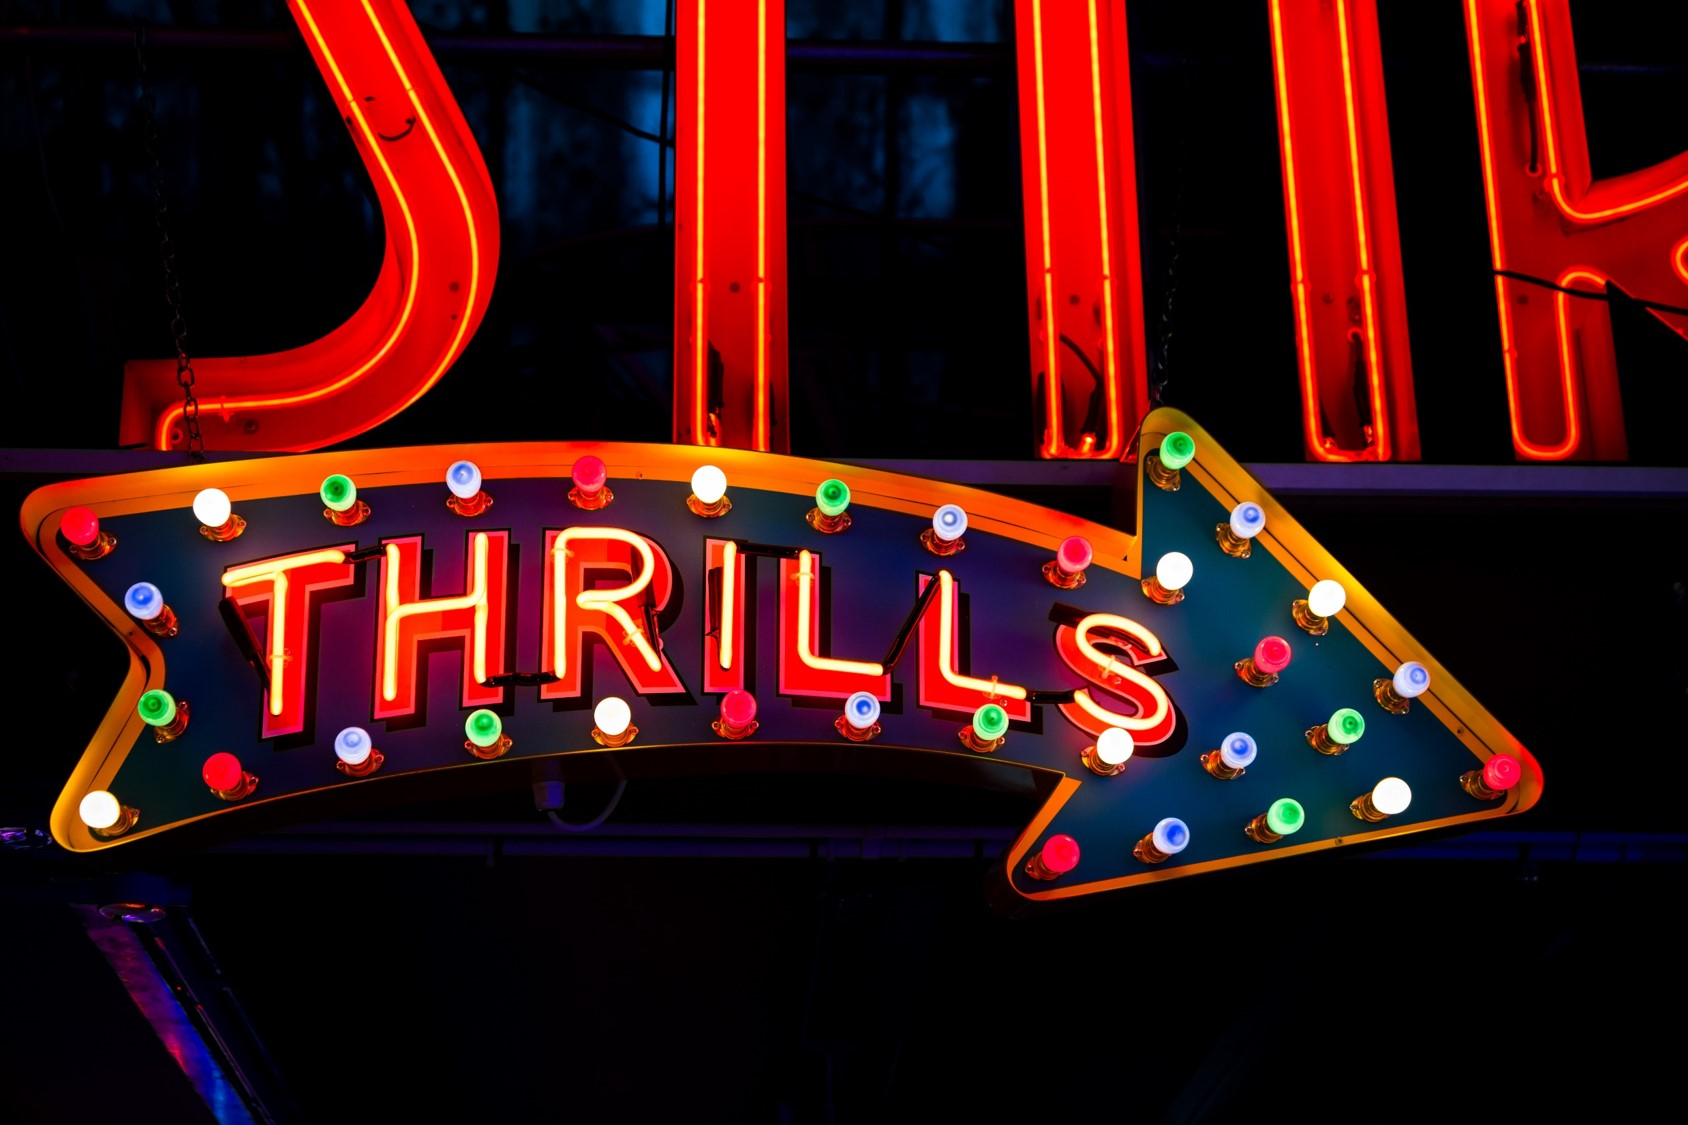 Sign with Thrills in Lights